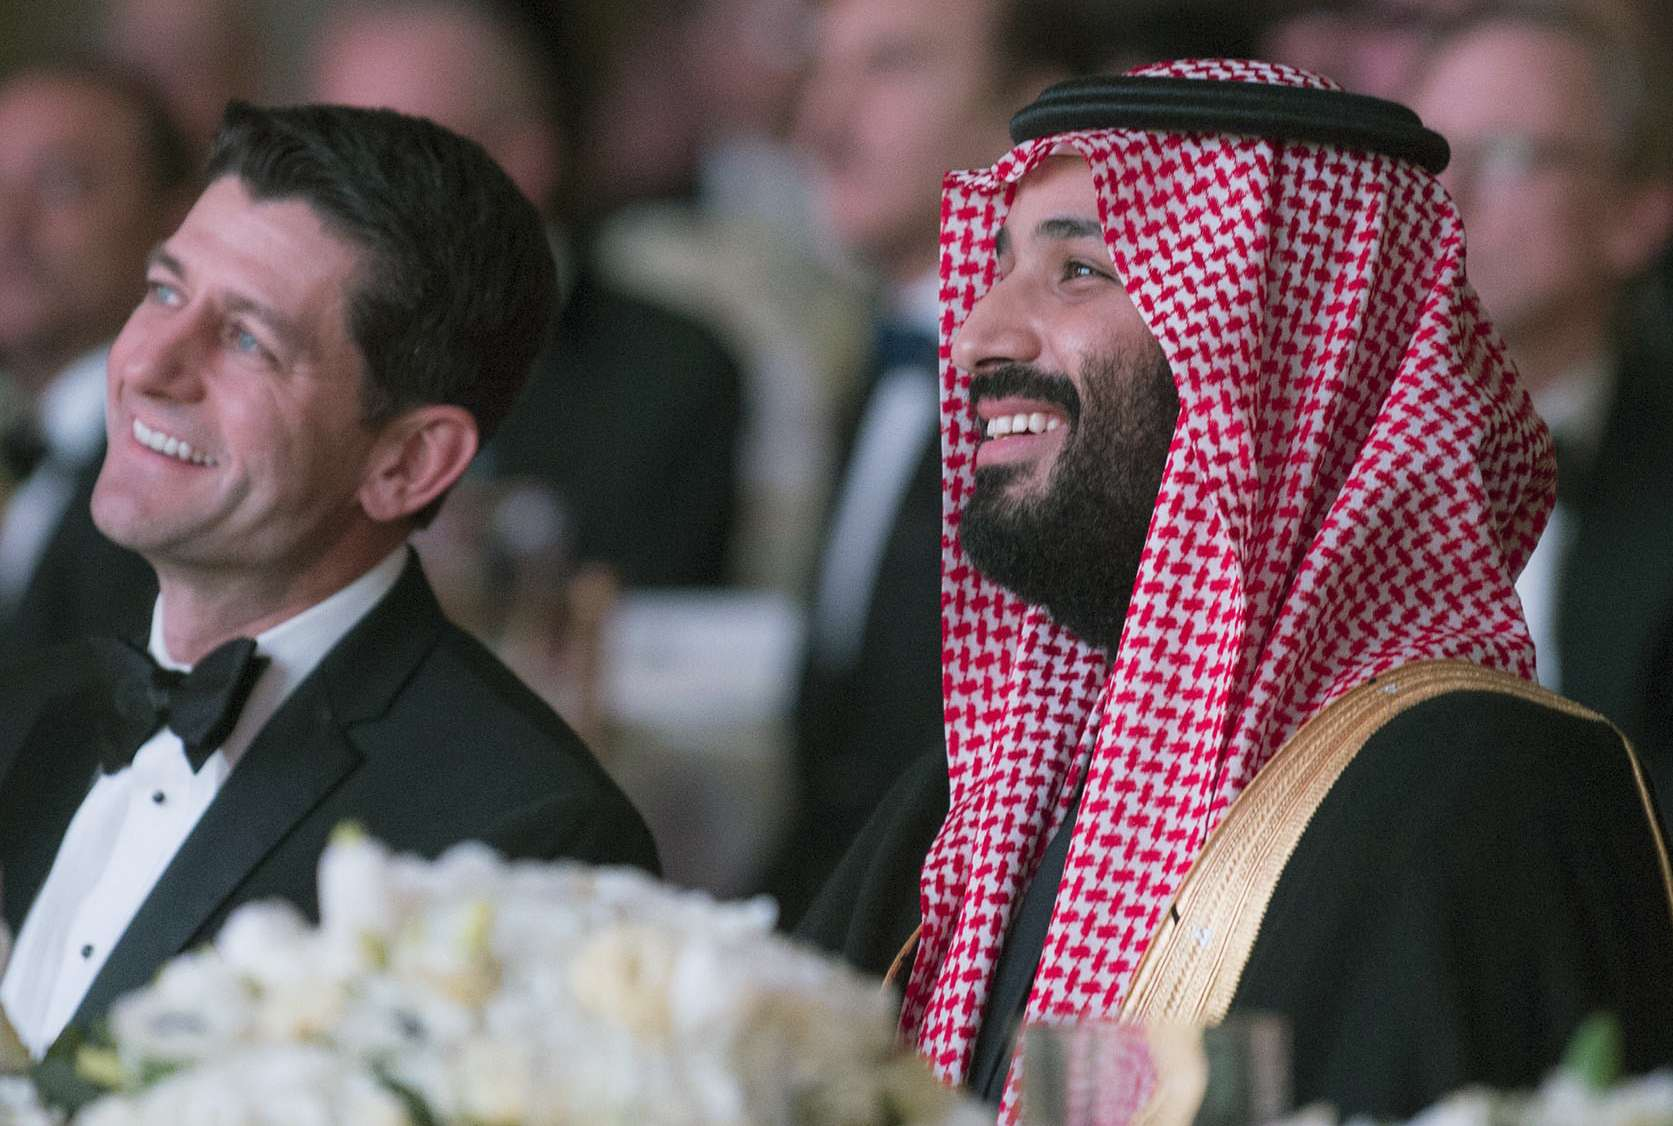 Saudi Crown Prince Mohammed bin Salman bin Abdulaziz (R) and US Speaker of the House Paul Ryan attend the Saudi-US Partnership Gala event in Washington, on March 22. (Saudi Royal Palace)